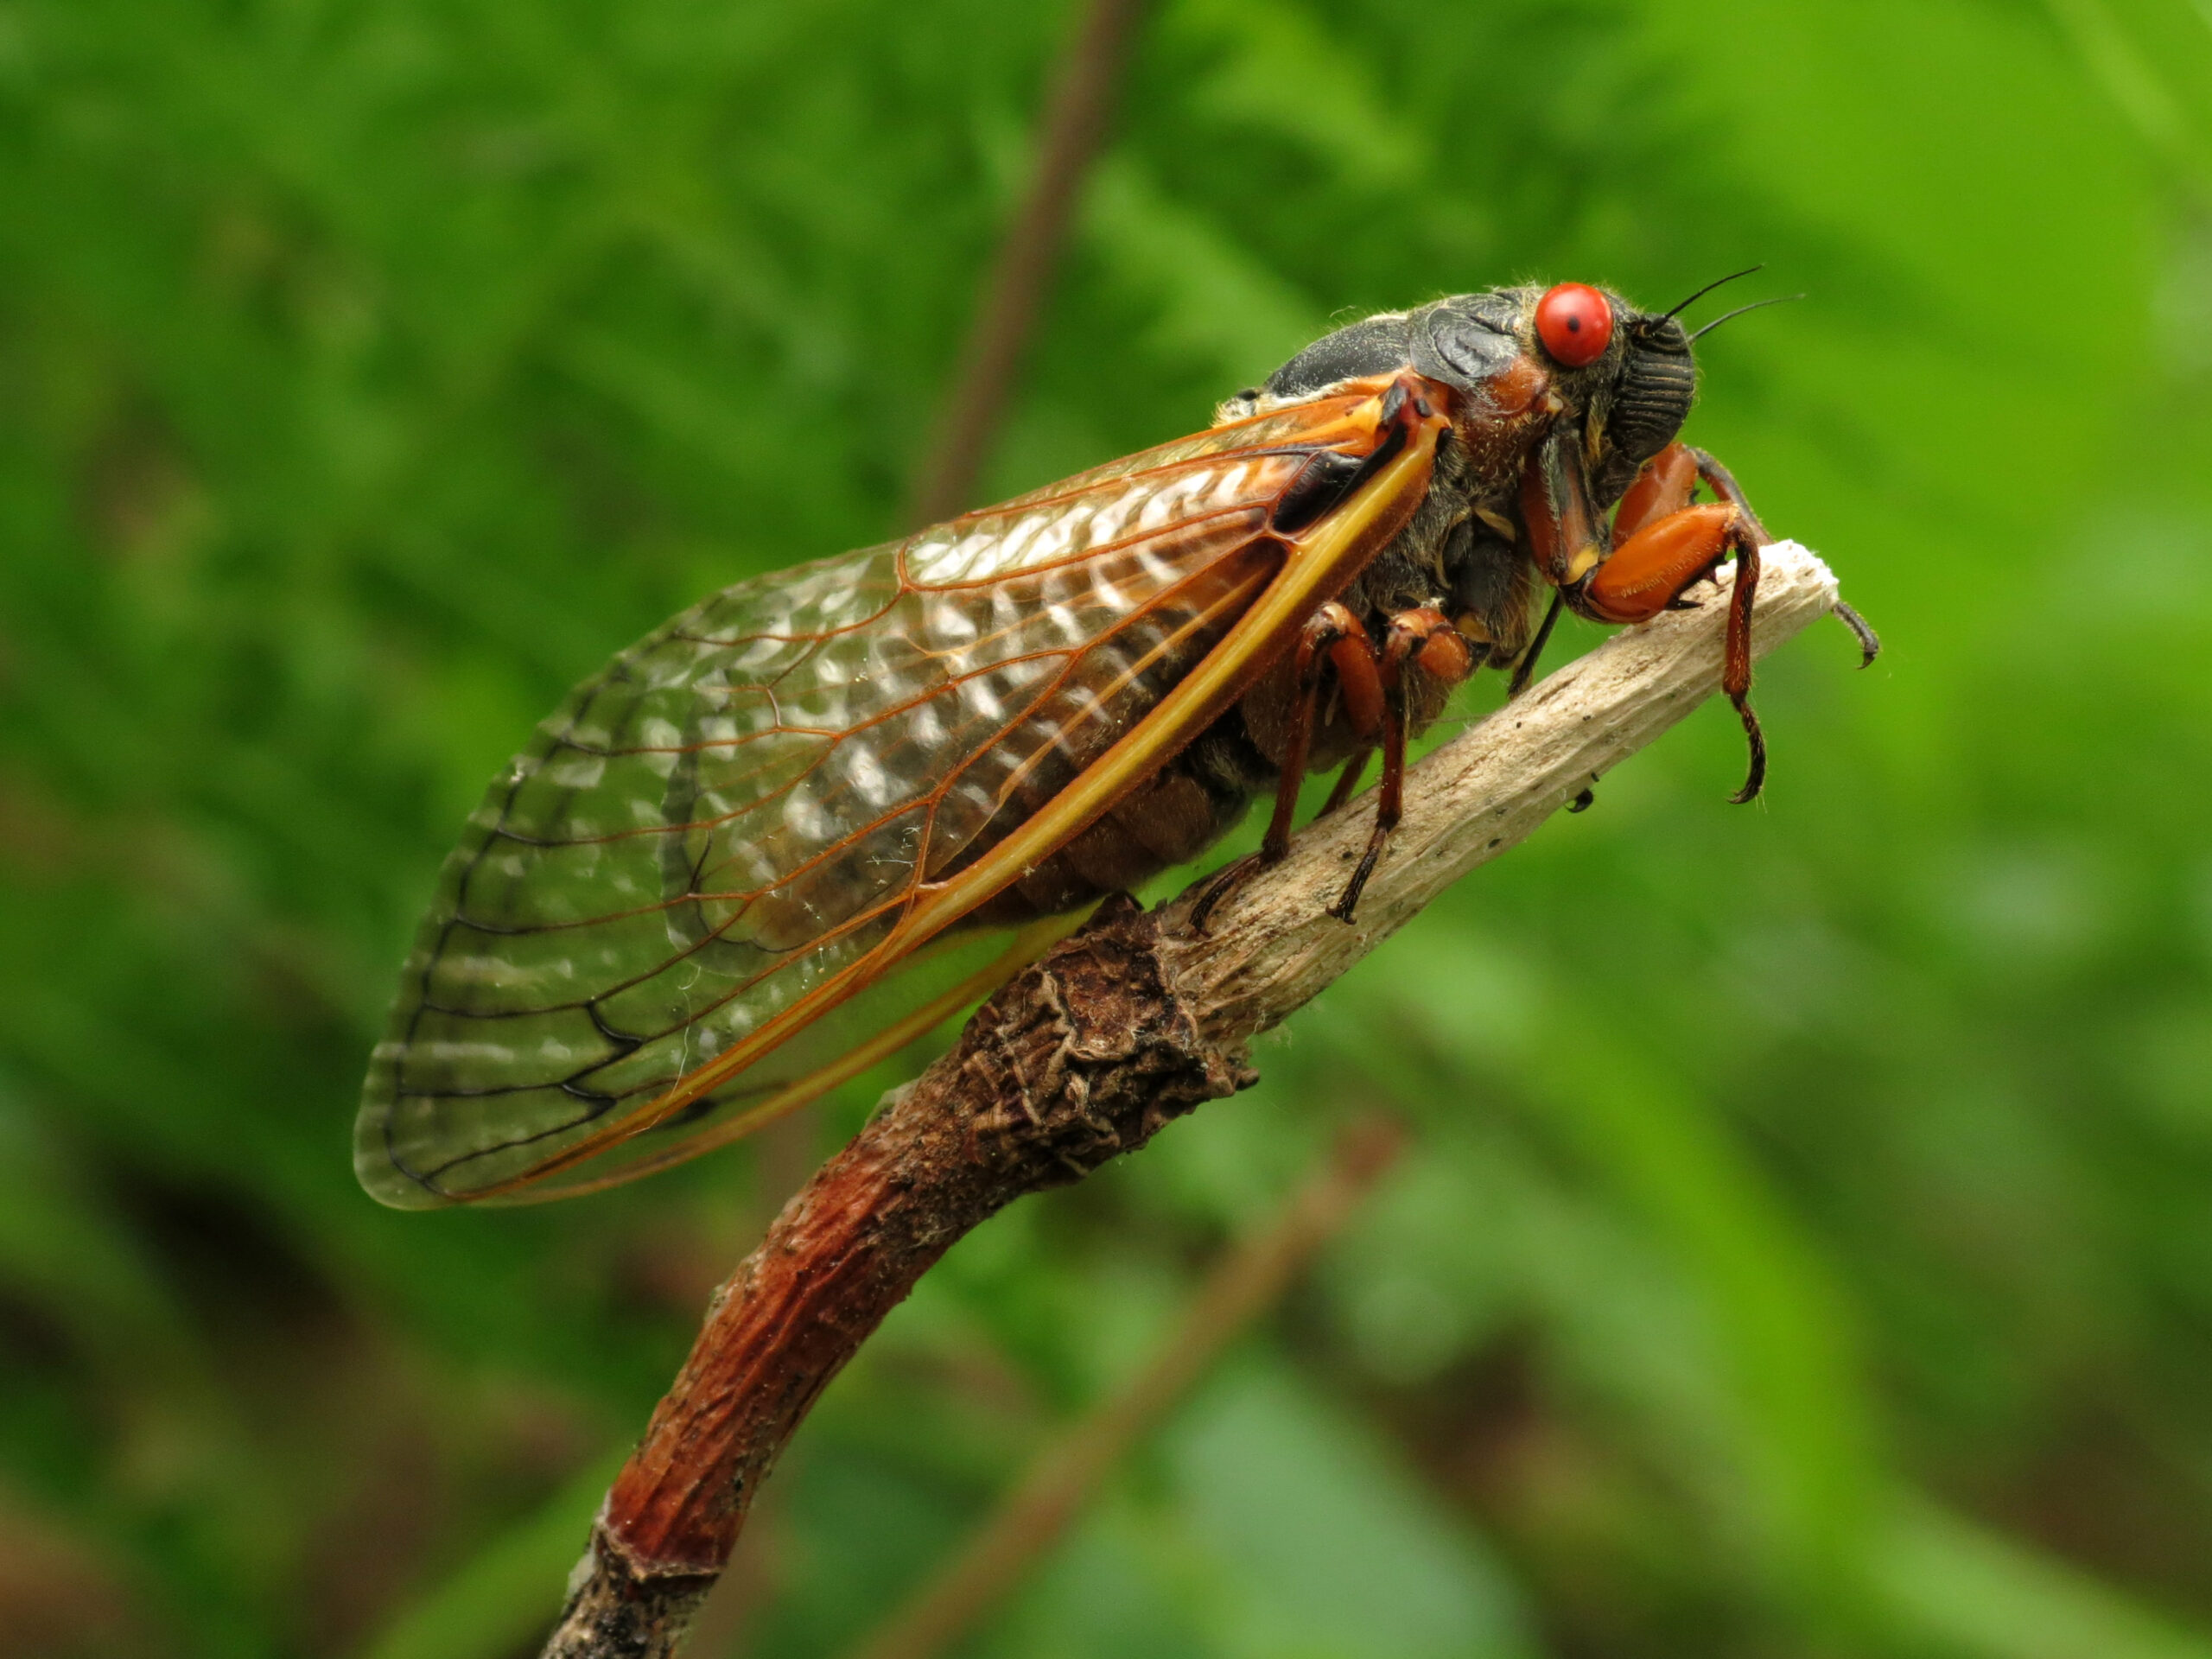 A black cicada with bulging red eyes and translucent amber wings perches on a twig against a leafy green background.